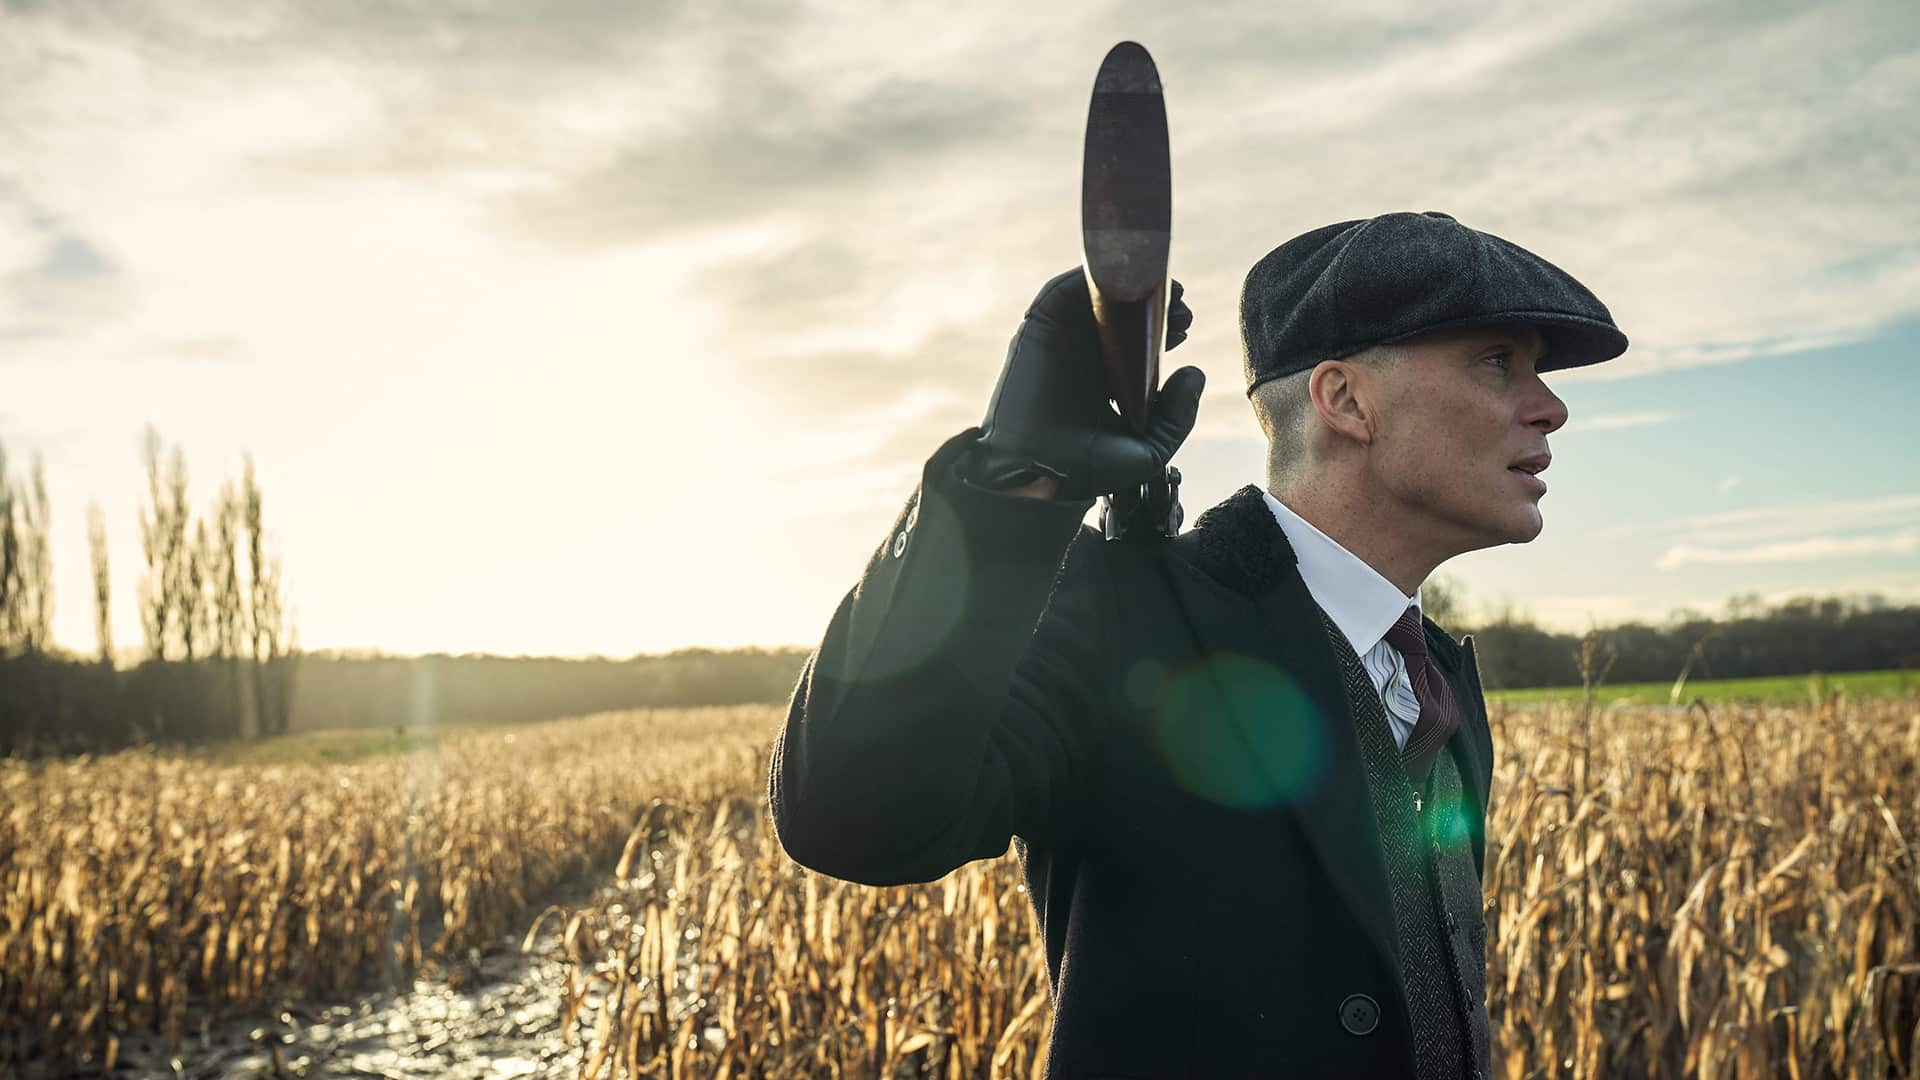 Tommy Shelby,Peaky Blinders cinematographe.it